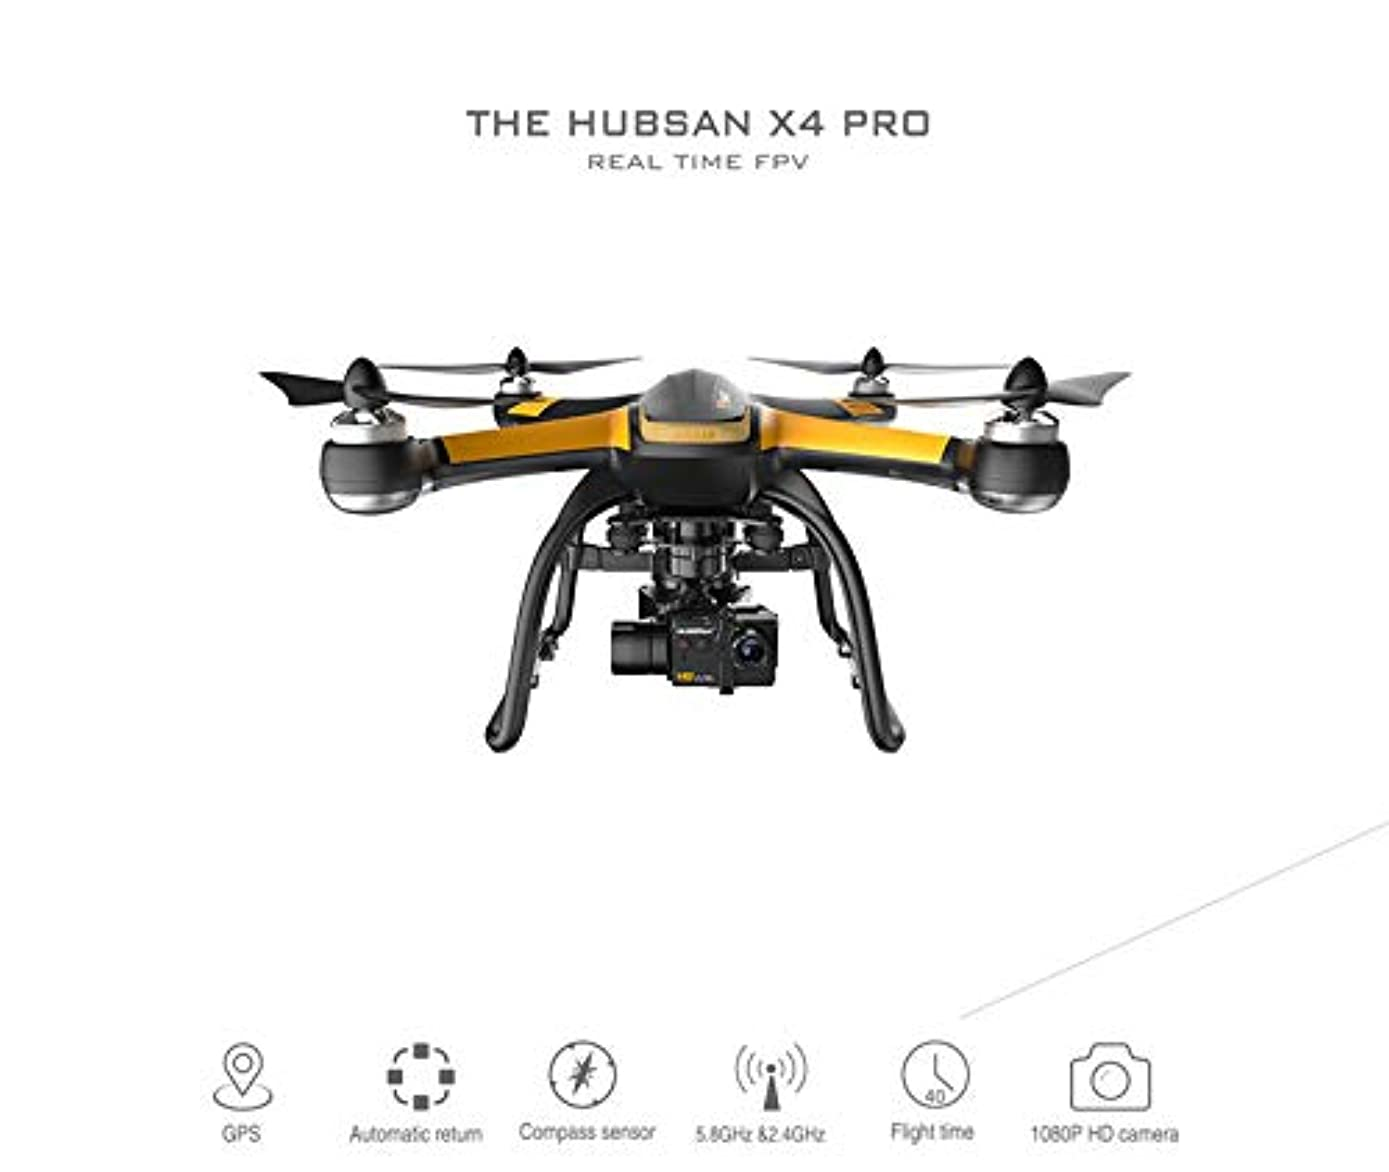 ETbotu Hubsan X4 Pro H109S 5.8G FPV RC Drone with 1080P HD Camera 3 Axle Gimbal GPS Quadcopter RTF US Regulations